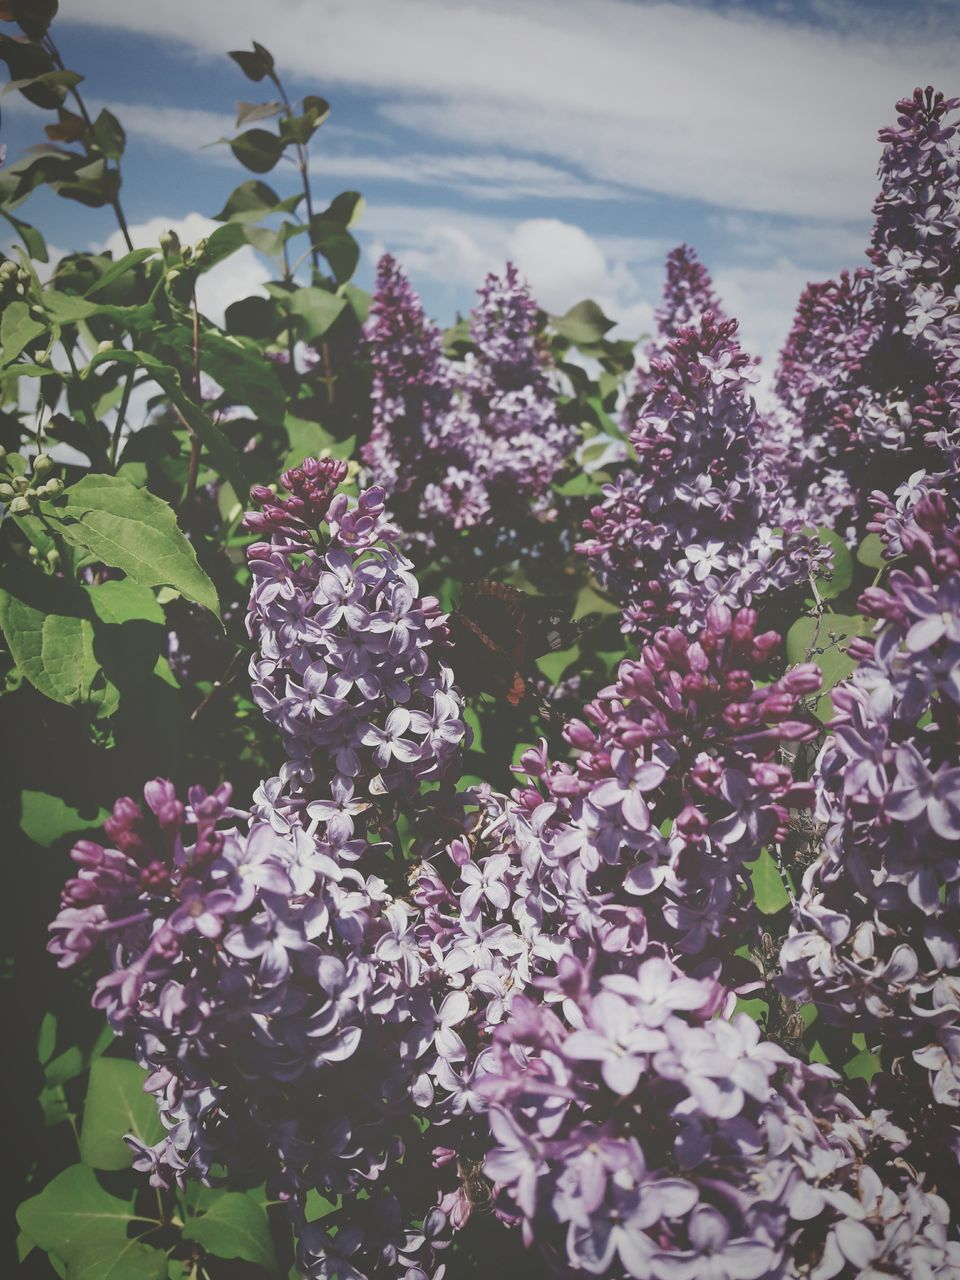 nature, flower, beauty in nature, no people, outdoors, growth, day, plant, tranquility, freshness, fragility, scenics, water, close-up, lilac, tree, sky, flower head